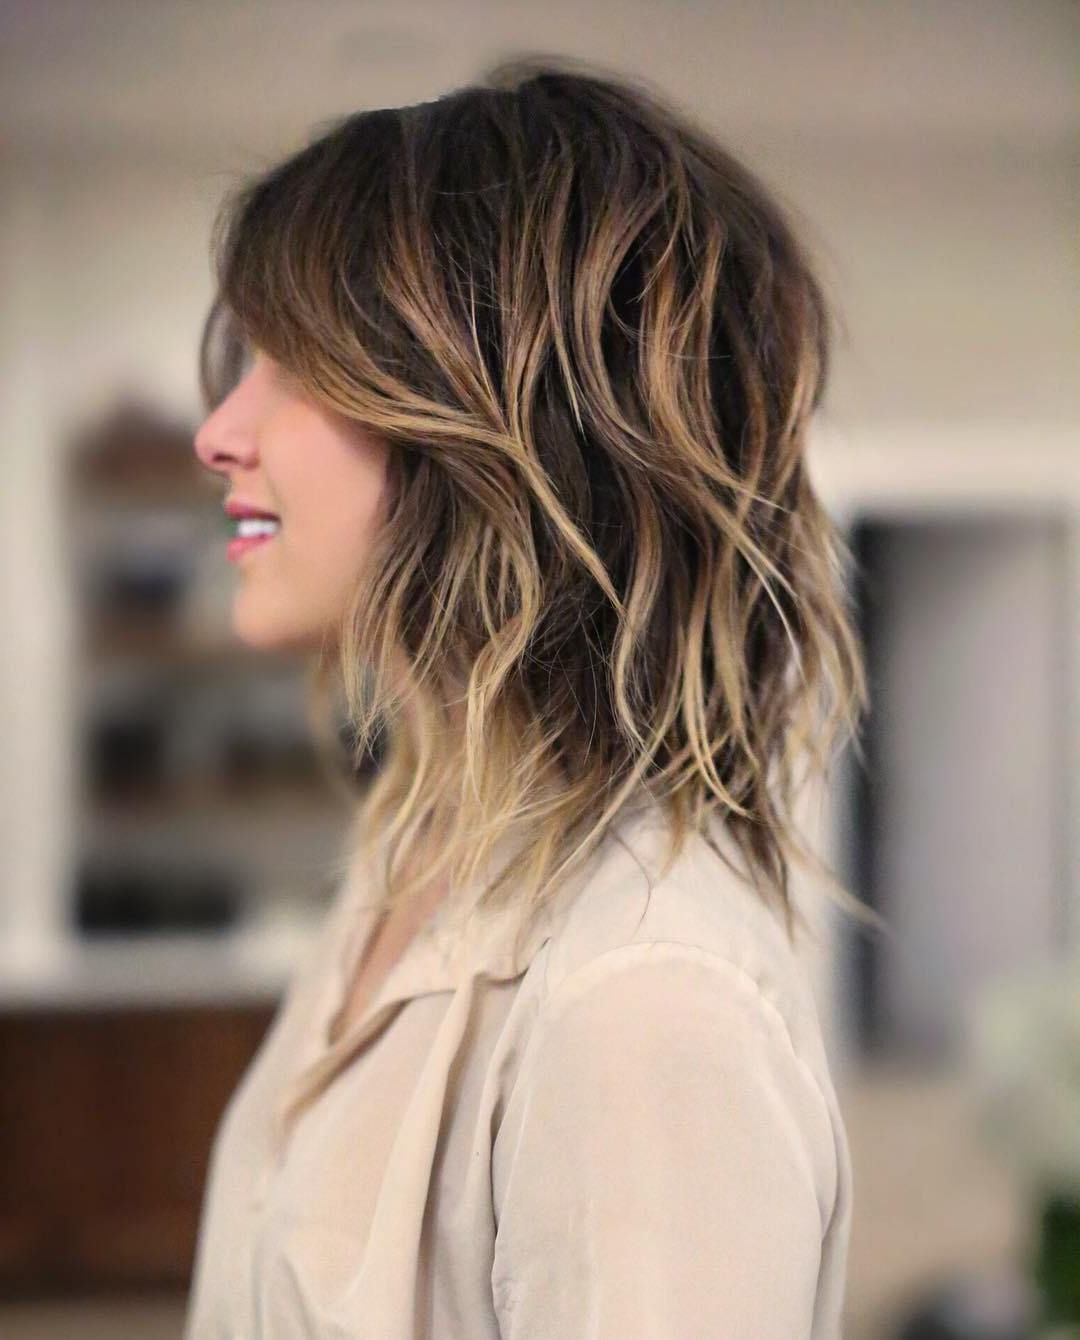 Widely Used Natural Layers And Ombre Highlights Long Shag Hairstyles Intended For Pin On Hair (View 4 of 20)